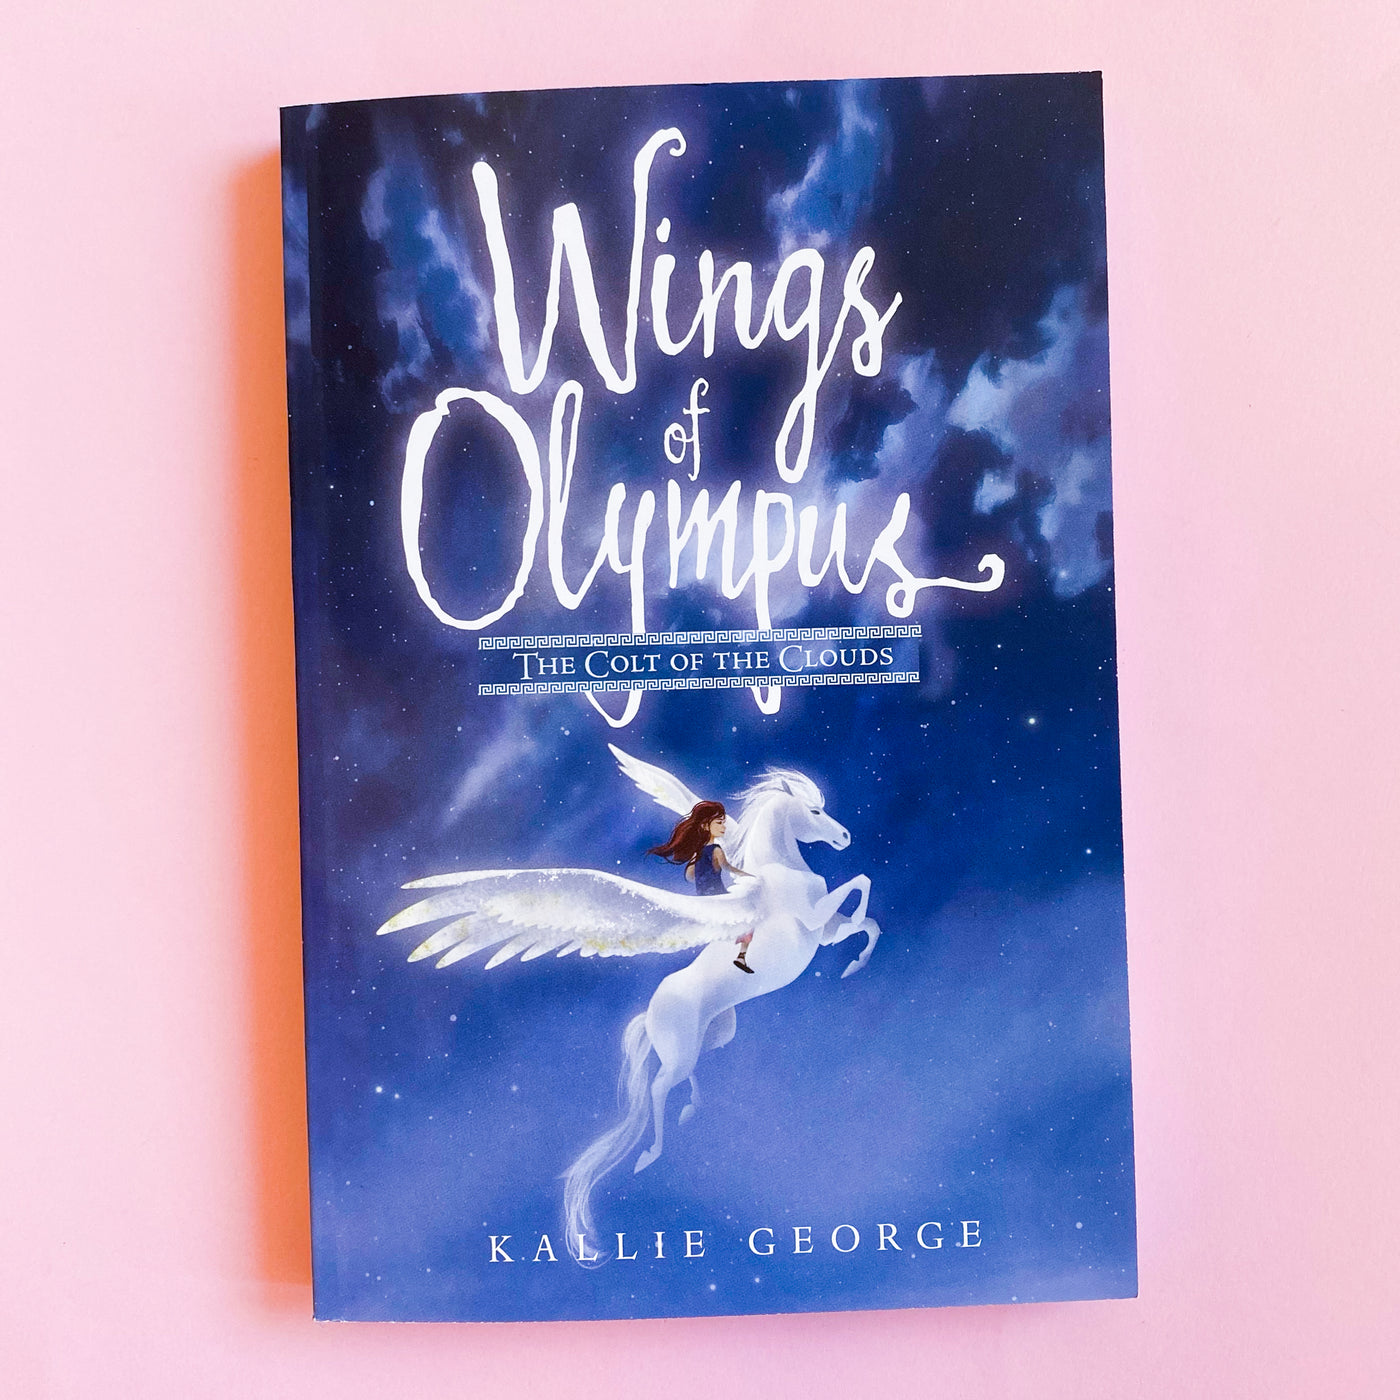 Wings of Olympus: The Colt of the Clouds by Kallie George